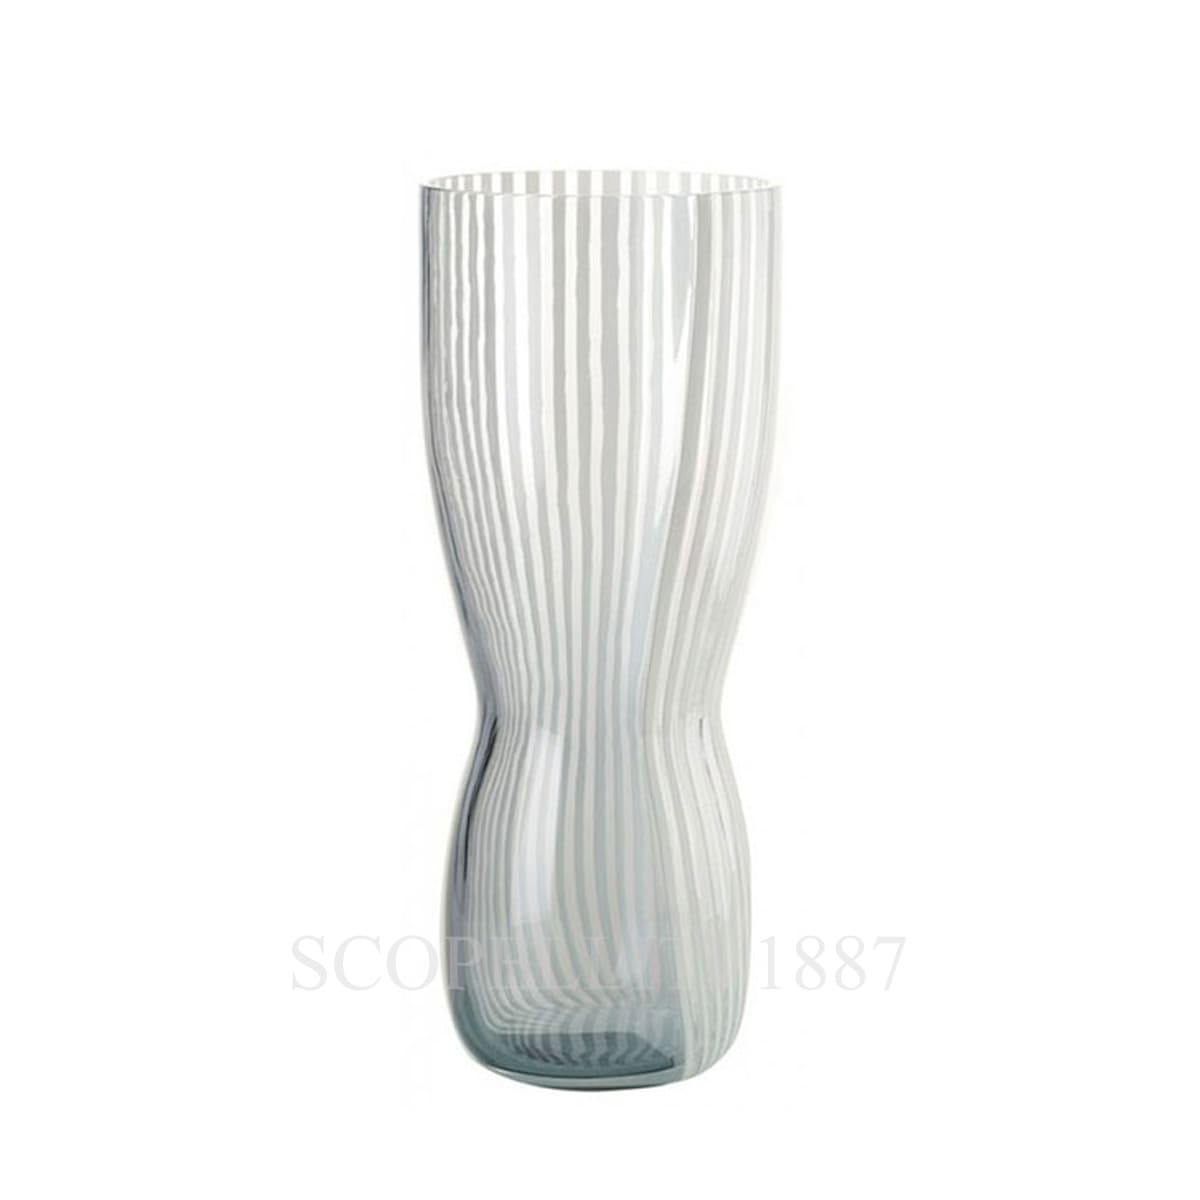 Venini Cinetici Murano glass Vase numbered edition